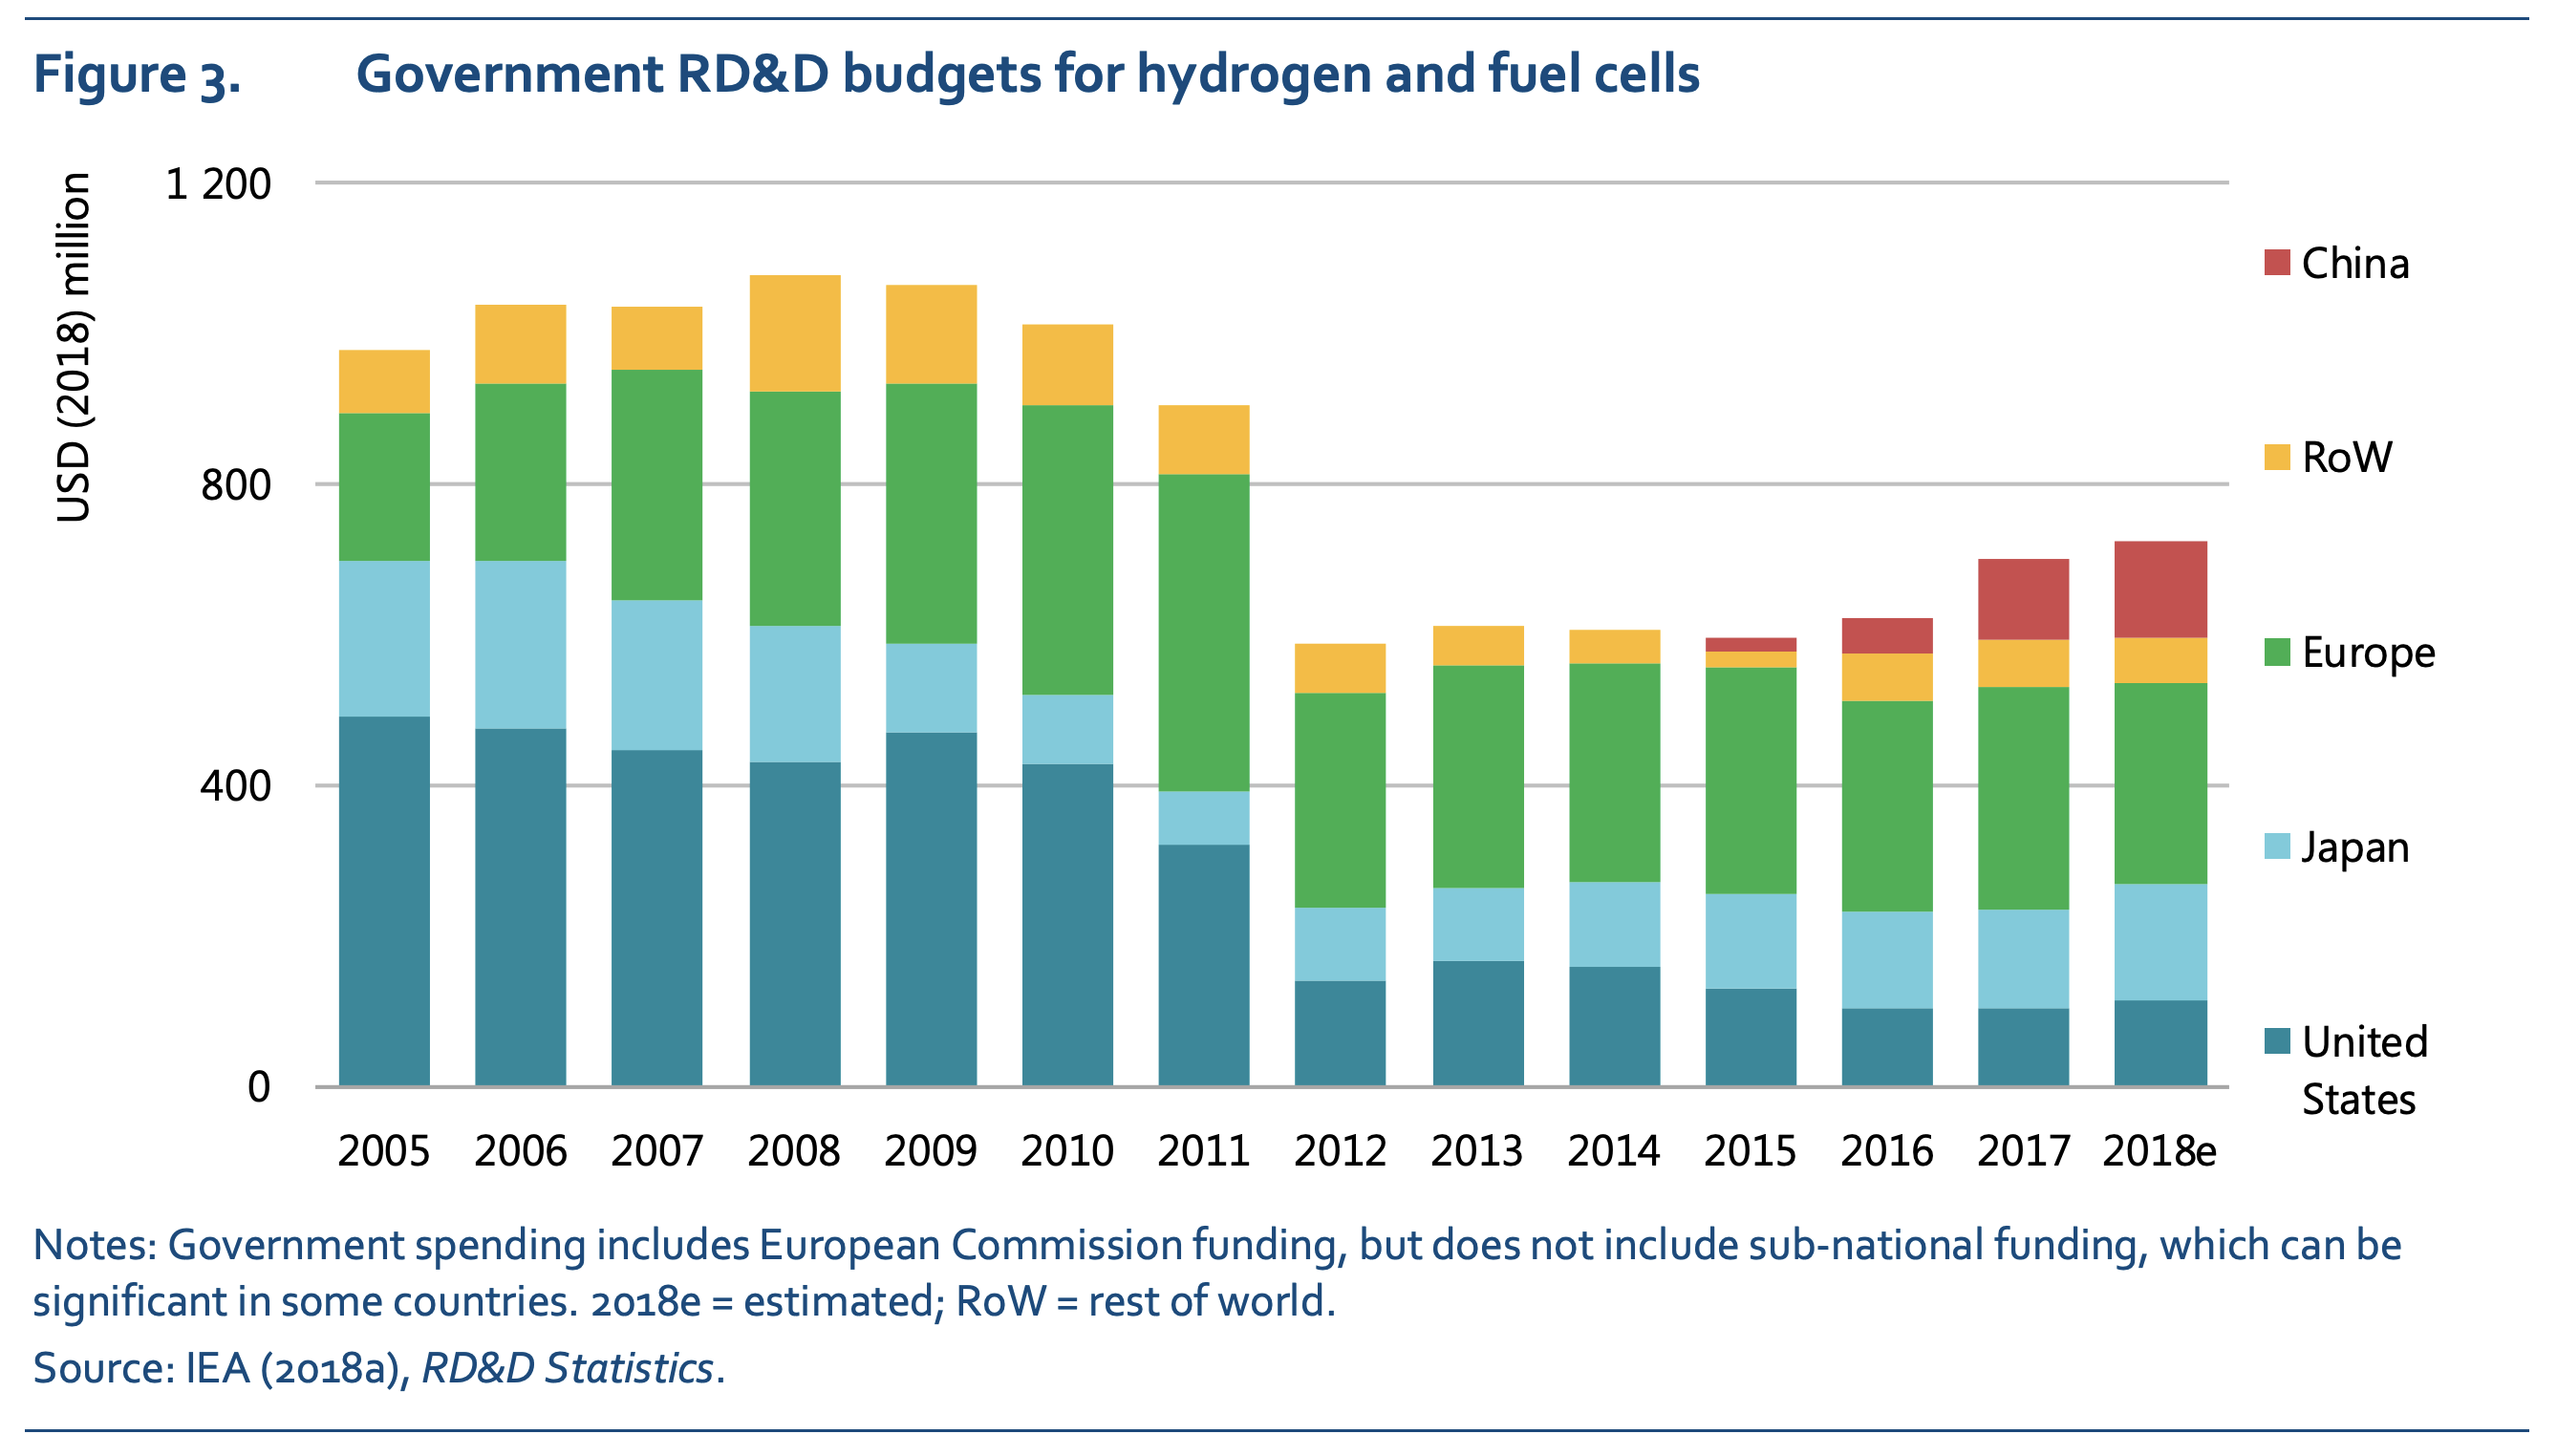 Global public investment in hydrogen R&D is on the rise again